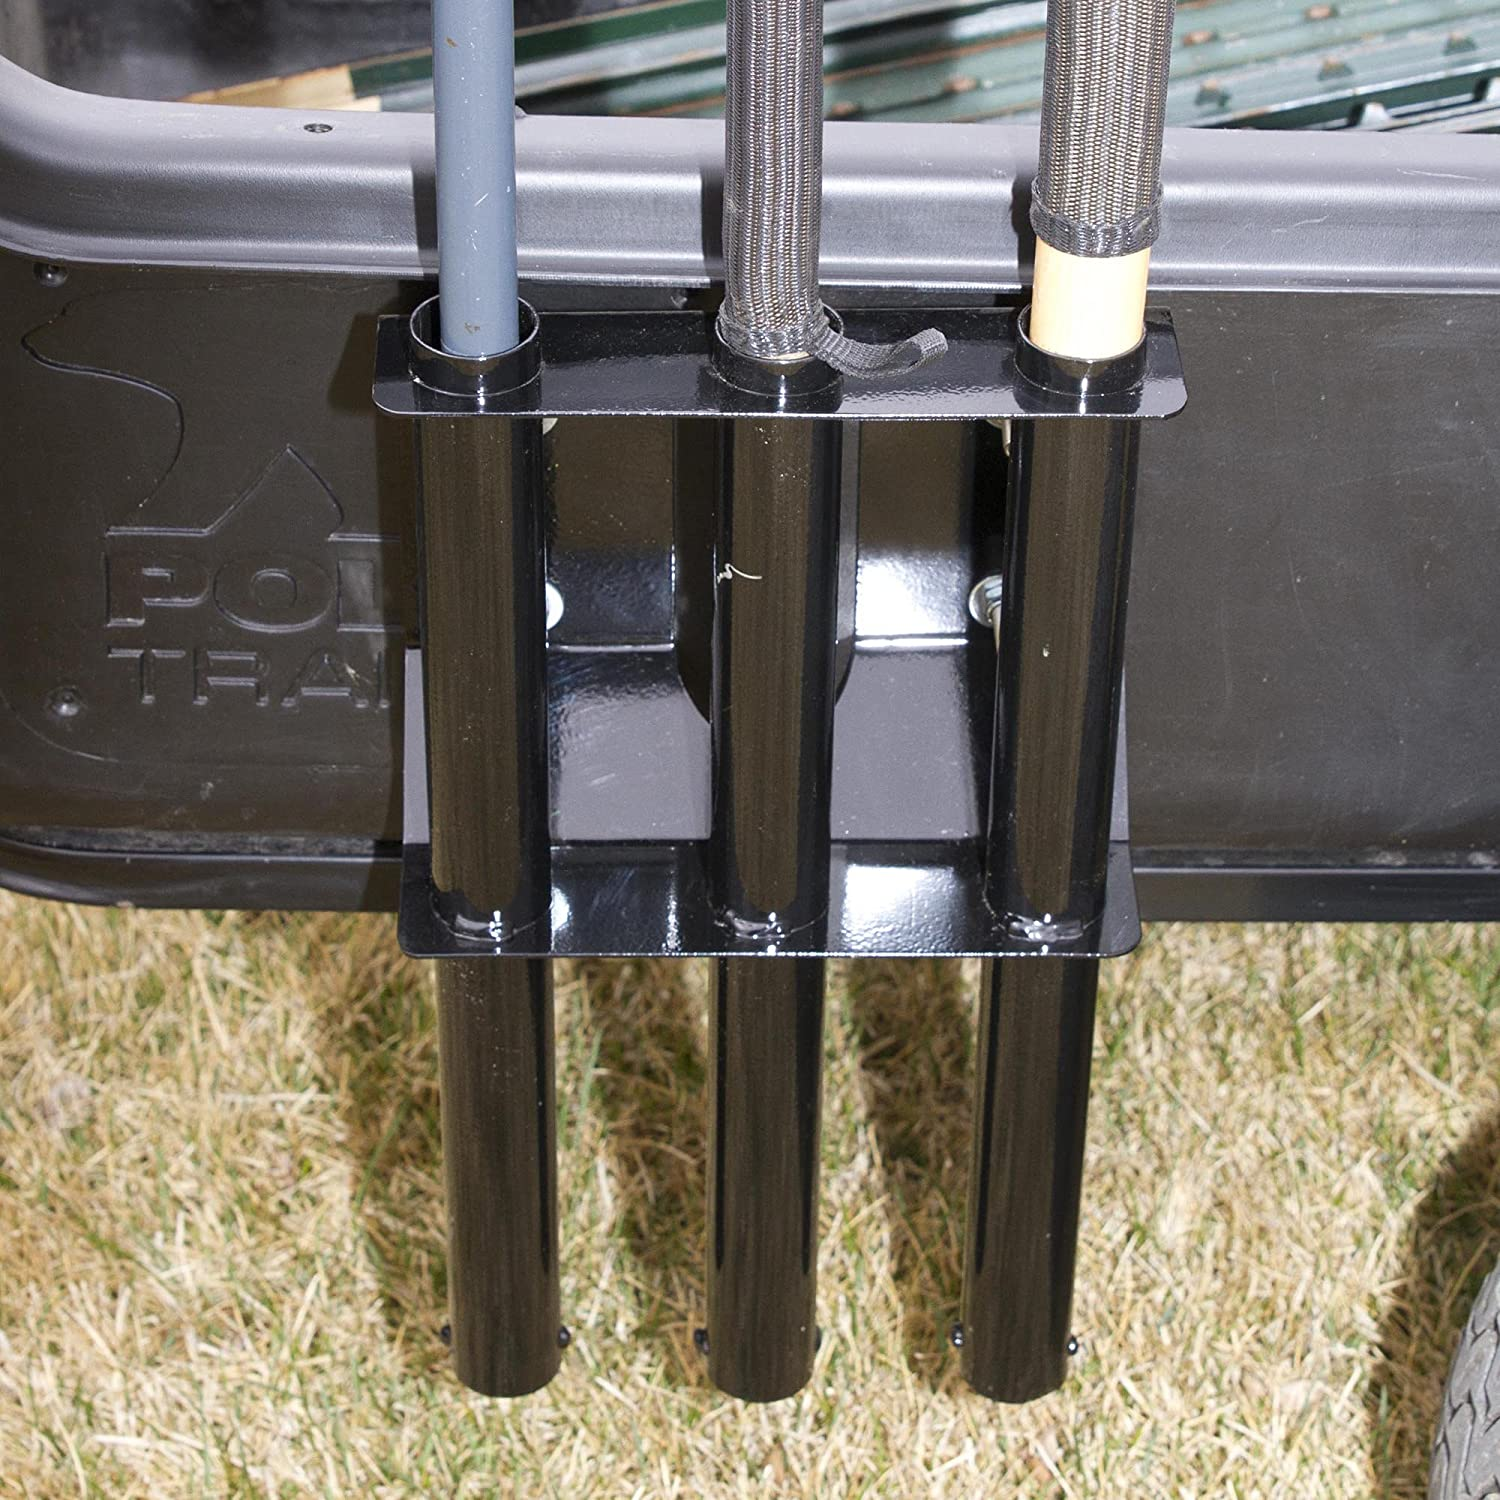 Black Polar Trailer Tow Behind Cart Tool Rack and Carts Easy to Install Durable Build Useful Accessory